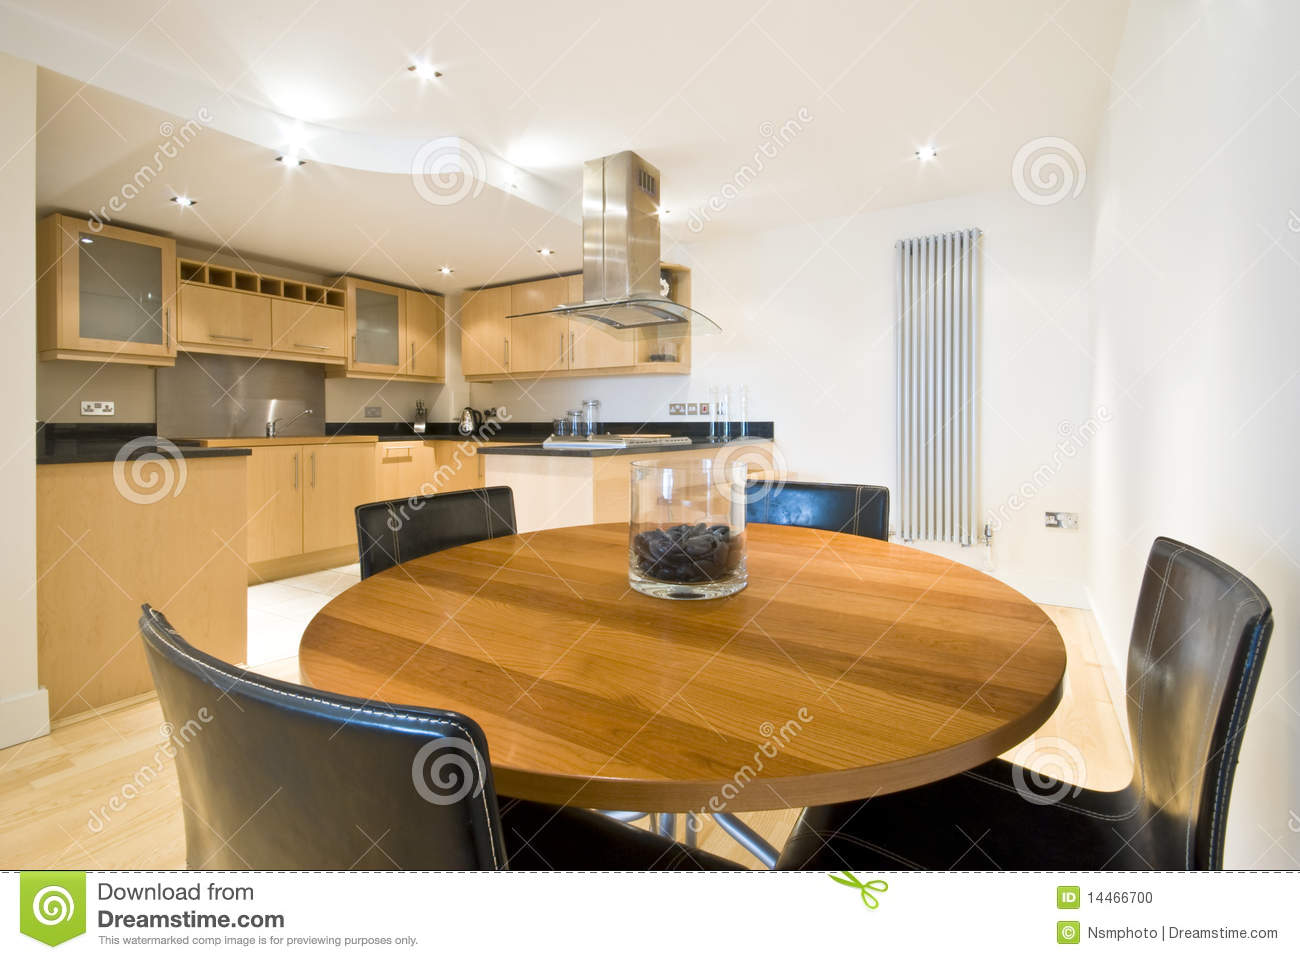 Modern dining area with kitchen